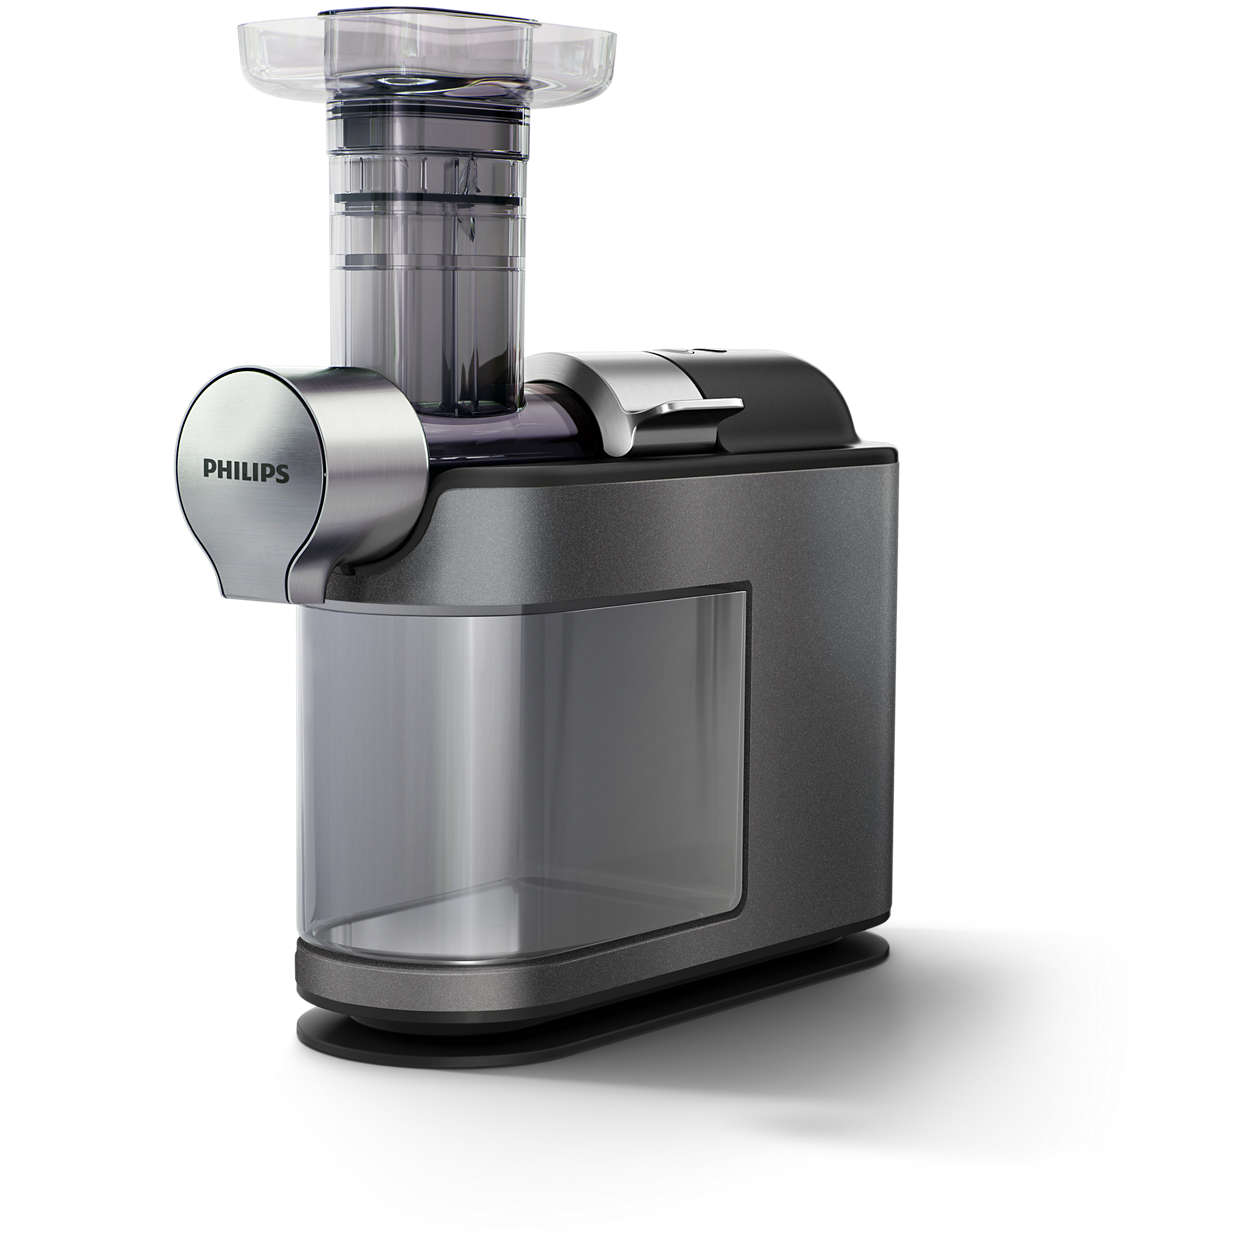 Avance Collection Slow Juicer HR1947/30 Philips